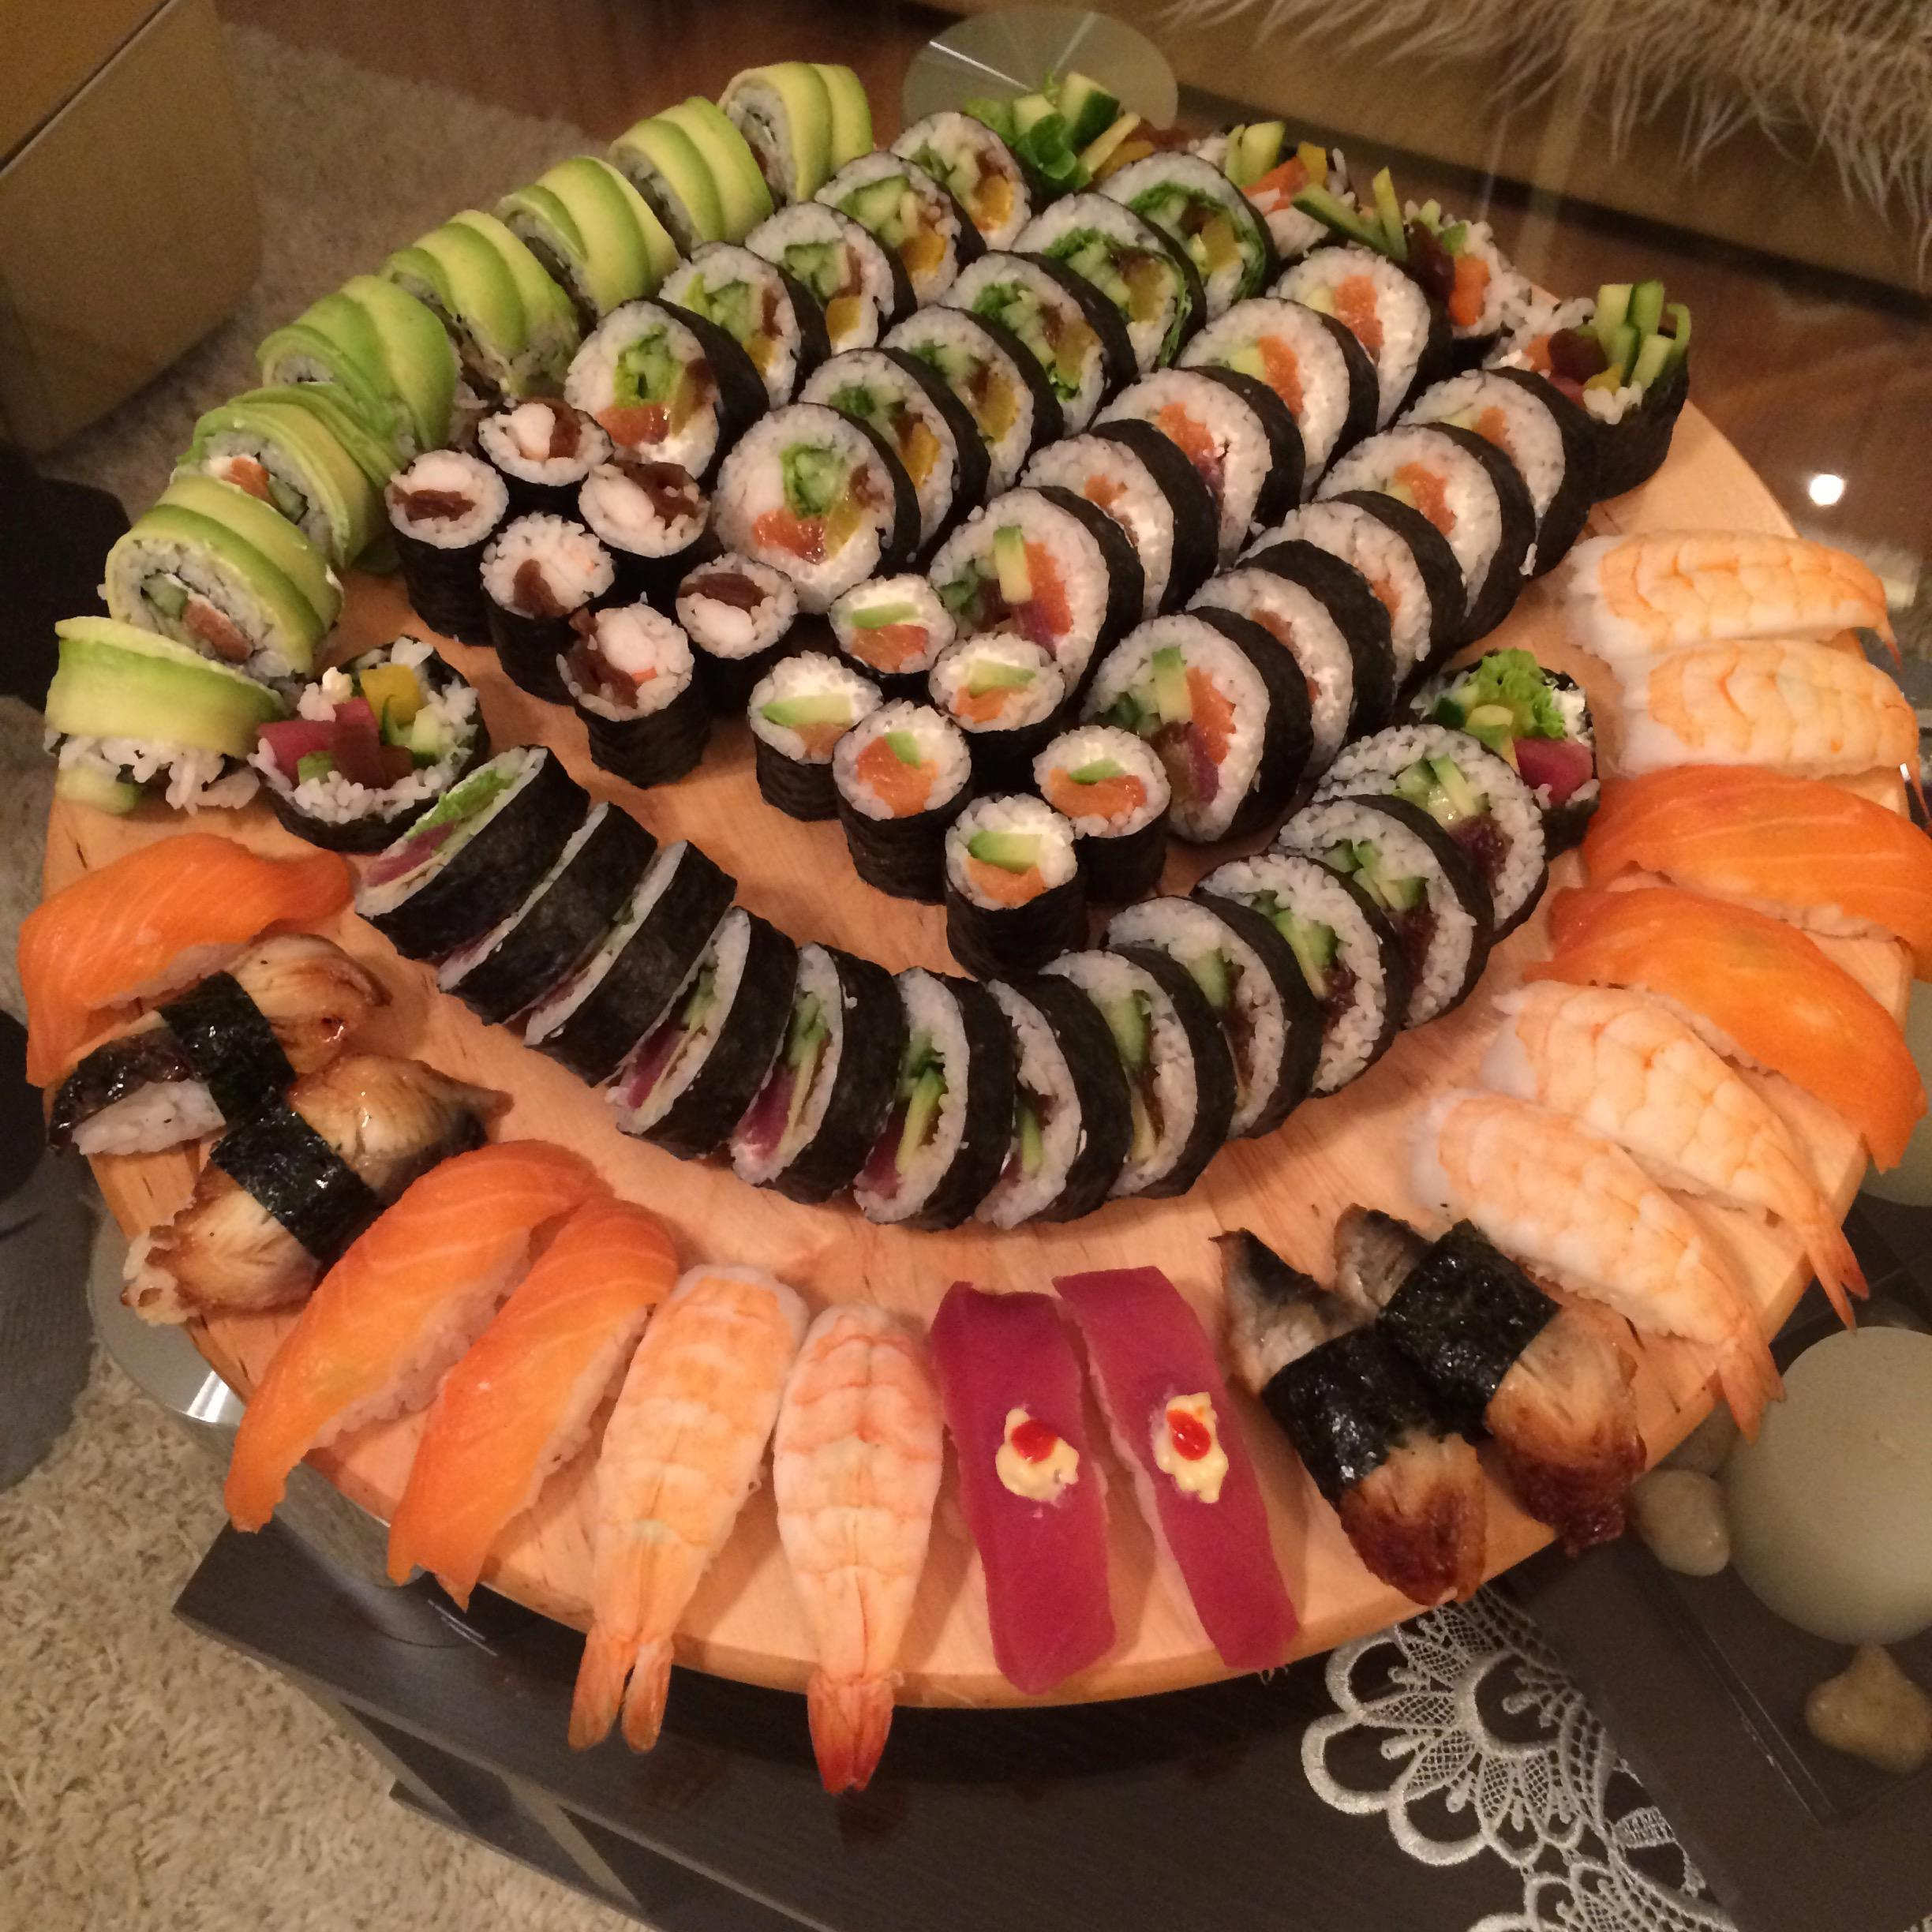 Homemade] Sushi plate I made with my SO. : food